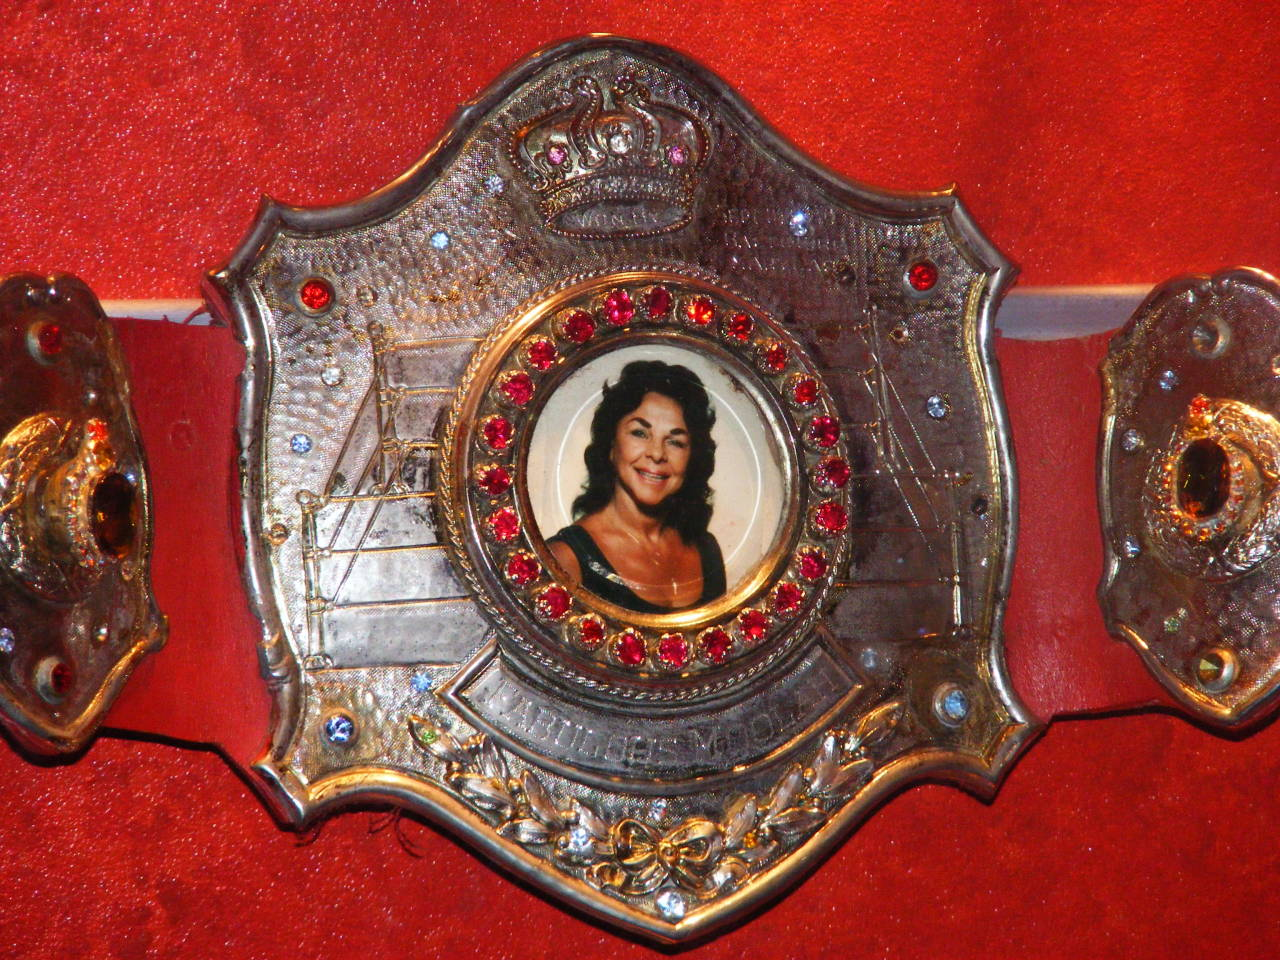 The Fabulous Moolah's original Women's World Championship belt.